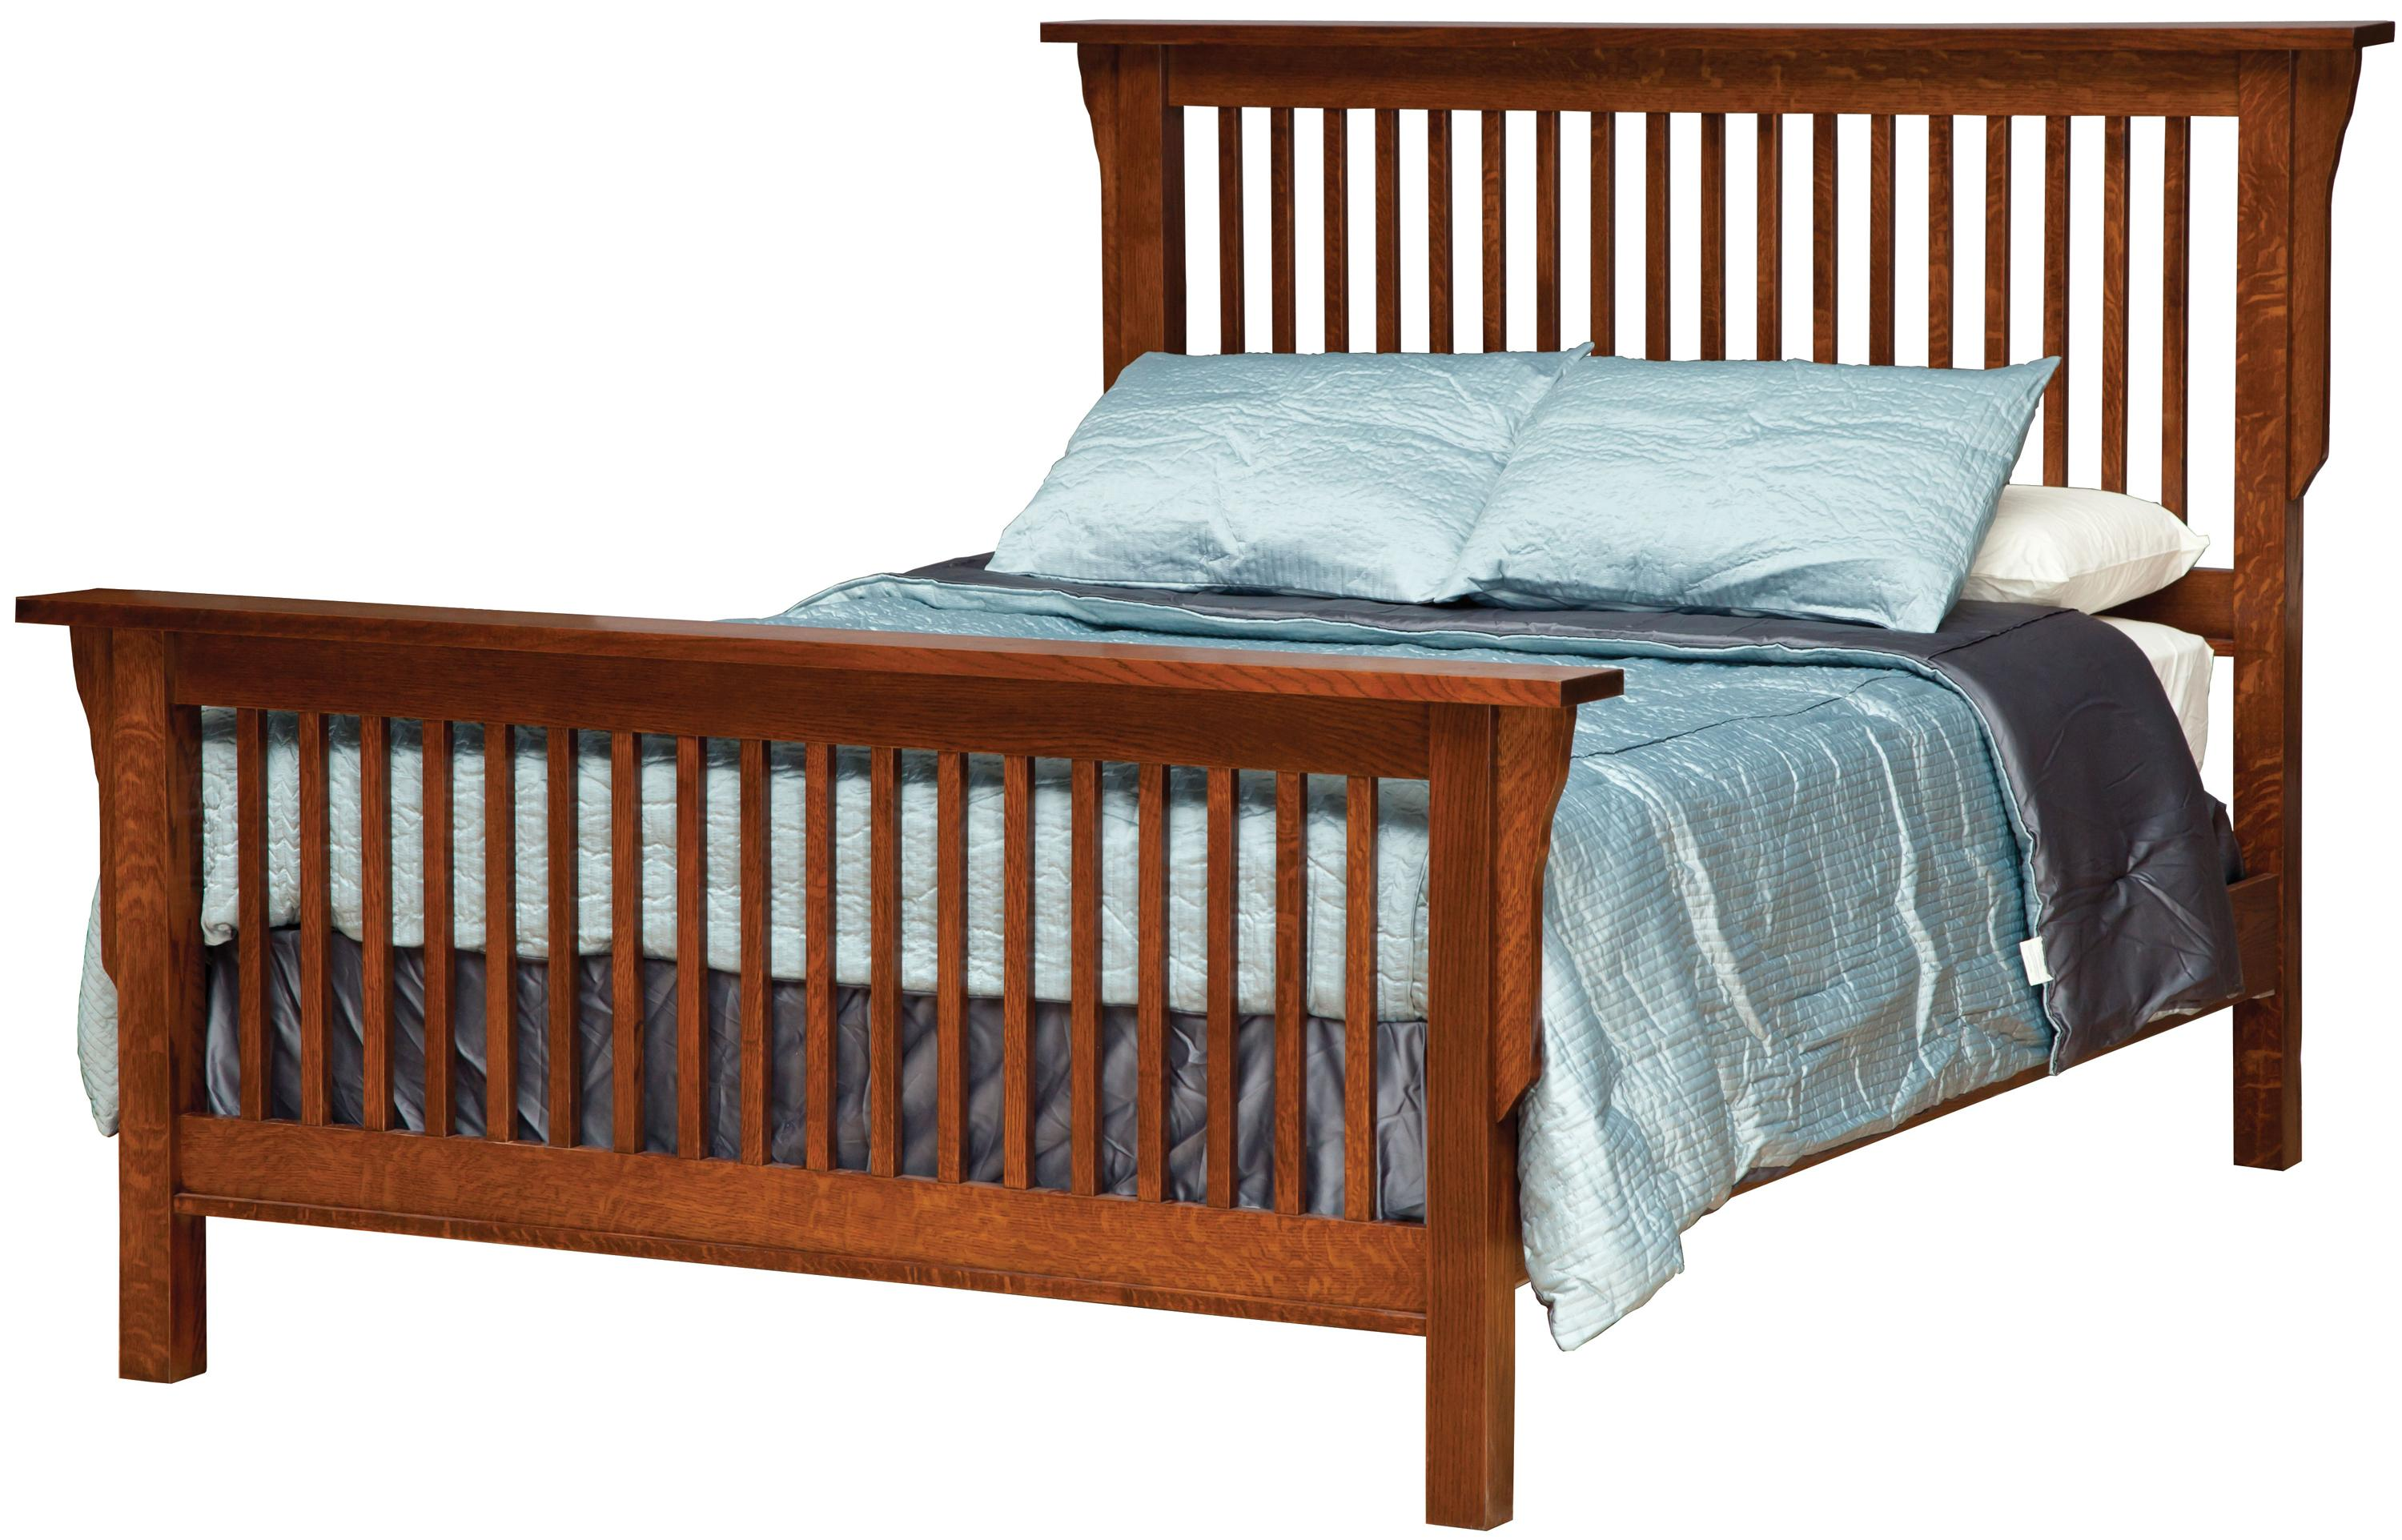 product cfm camaflexi ladder mission hayneedle loft high lateral with headboard master bed